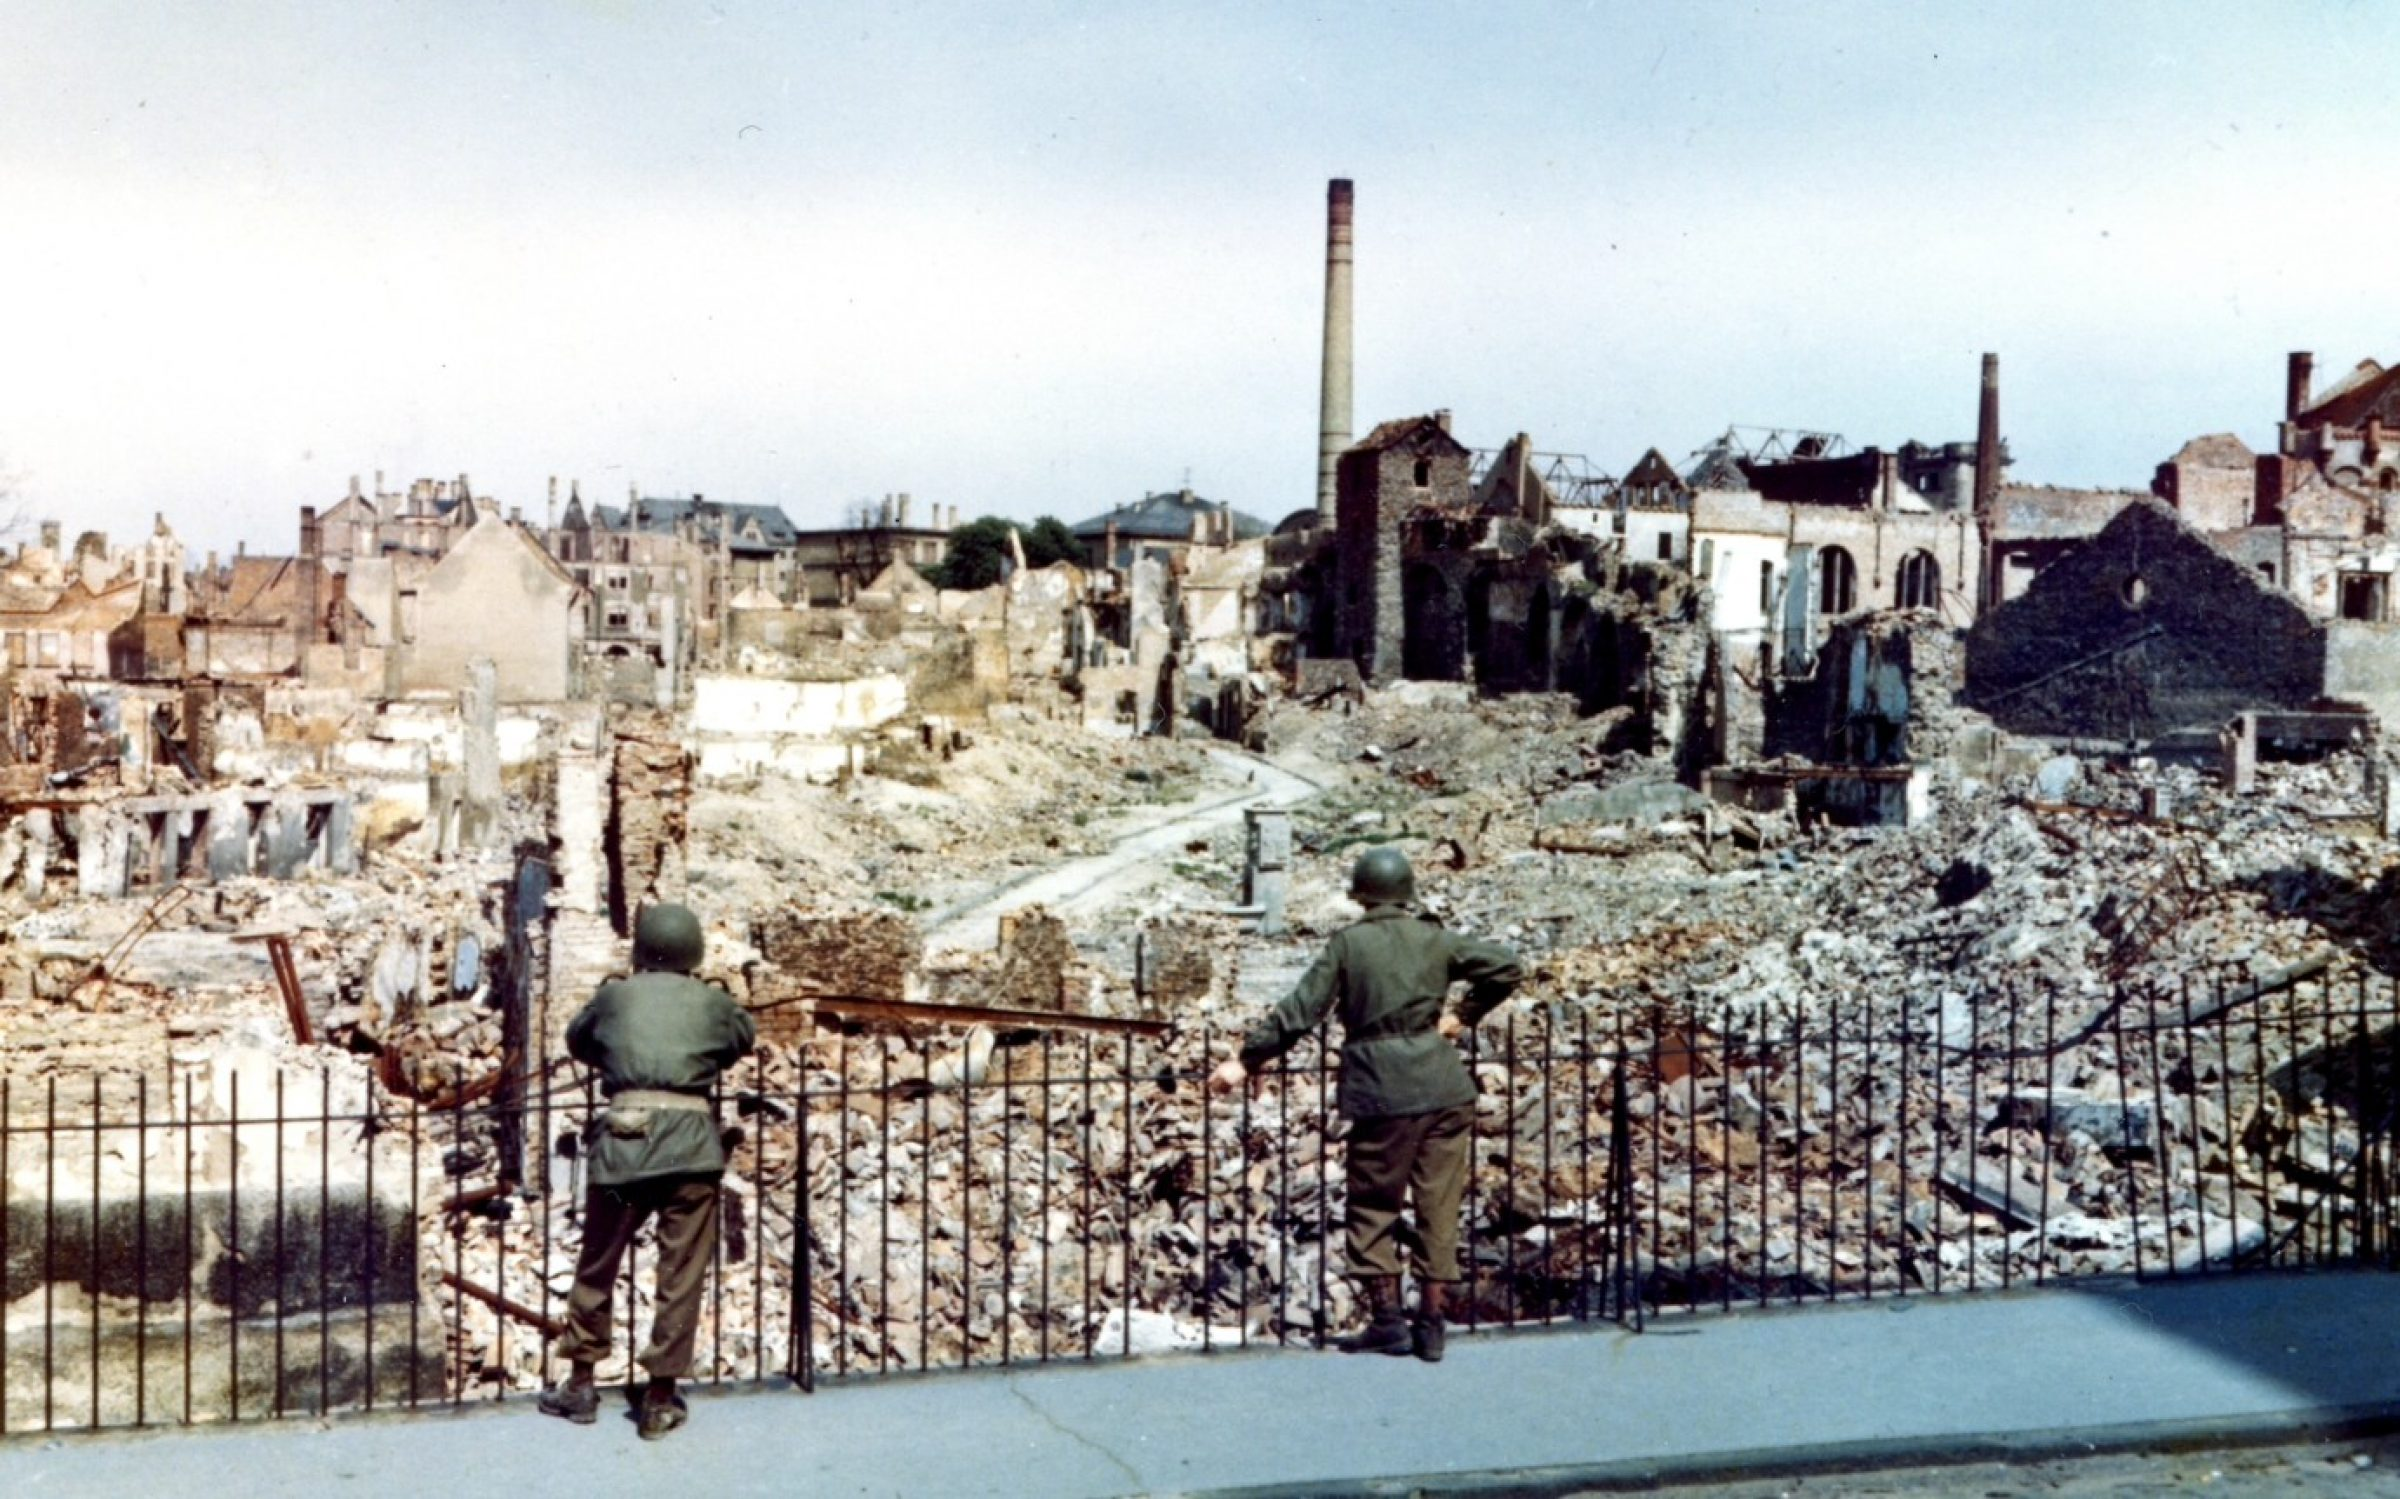 Two American soldiers survey the ruins of Darmstadt, a German city bombed by the British in 1944. Credit:  photo Quest / Getty Images.